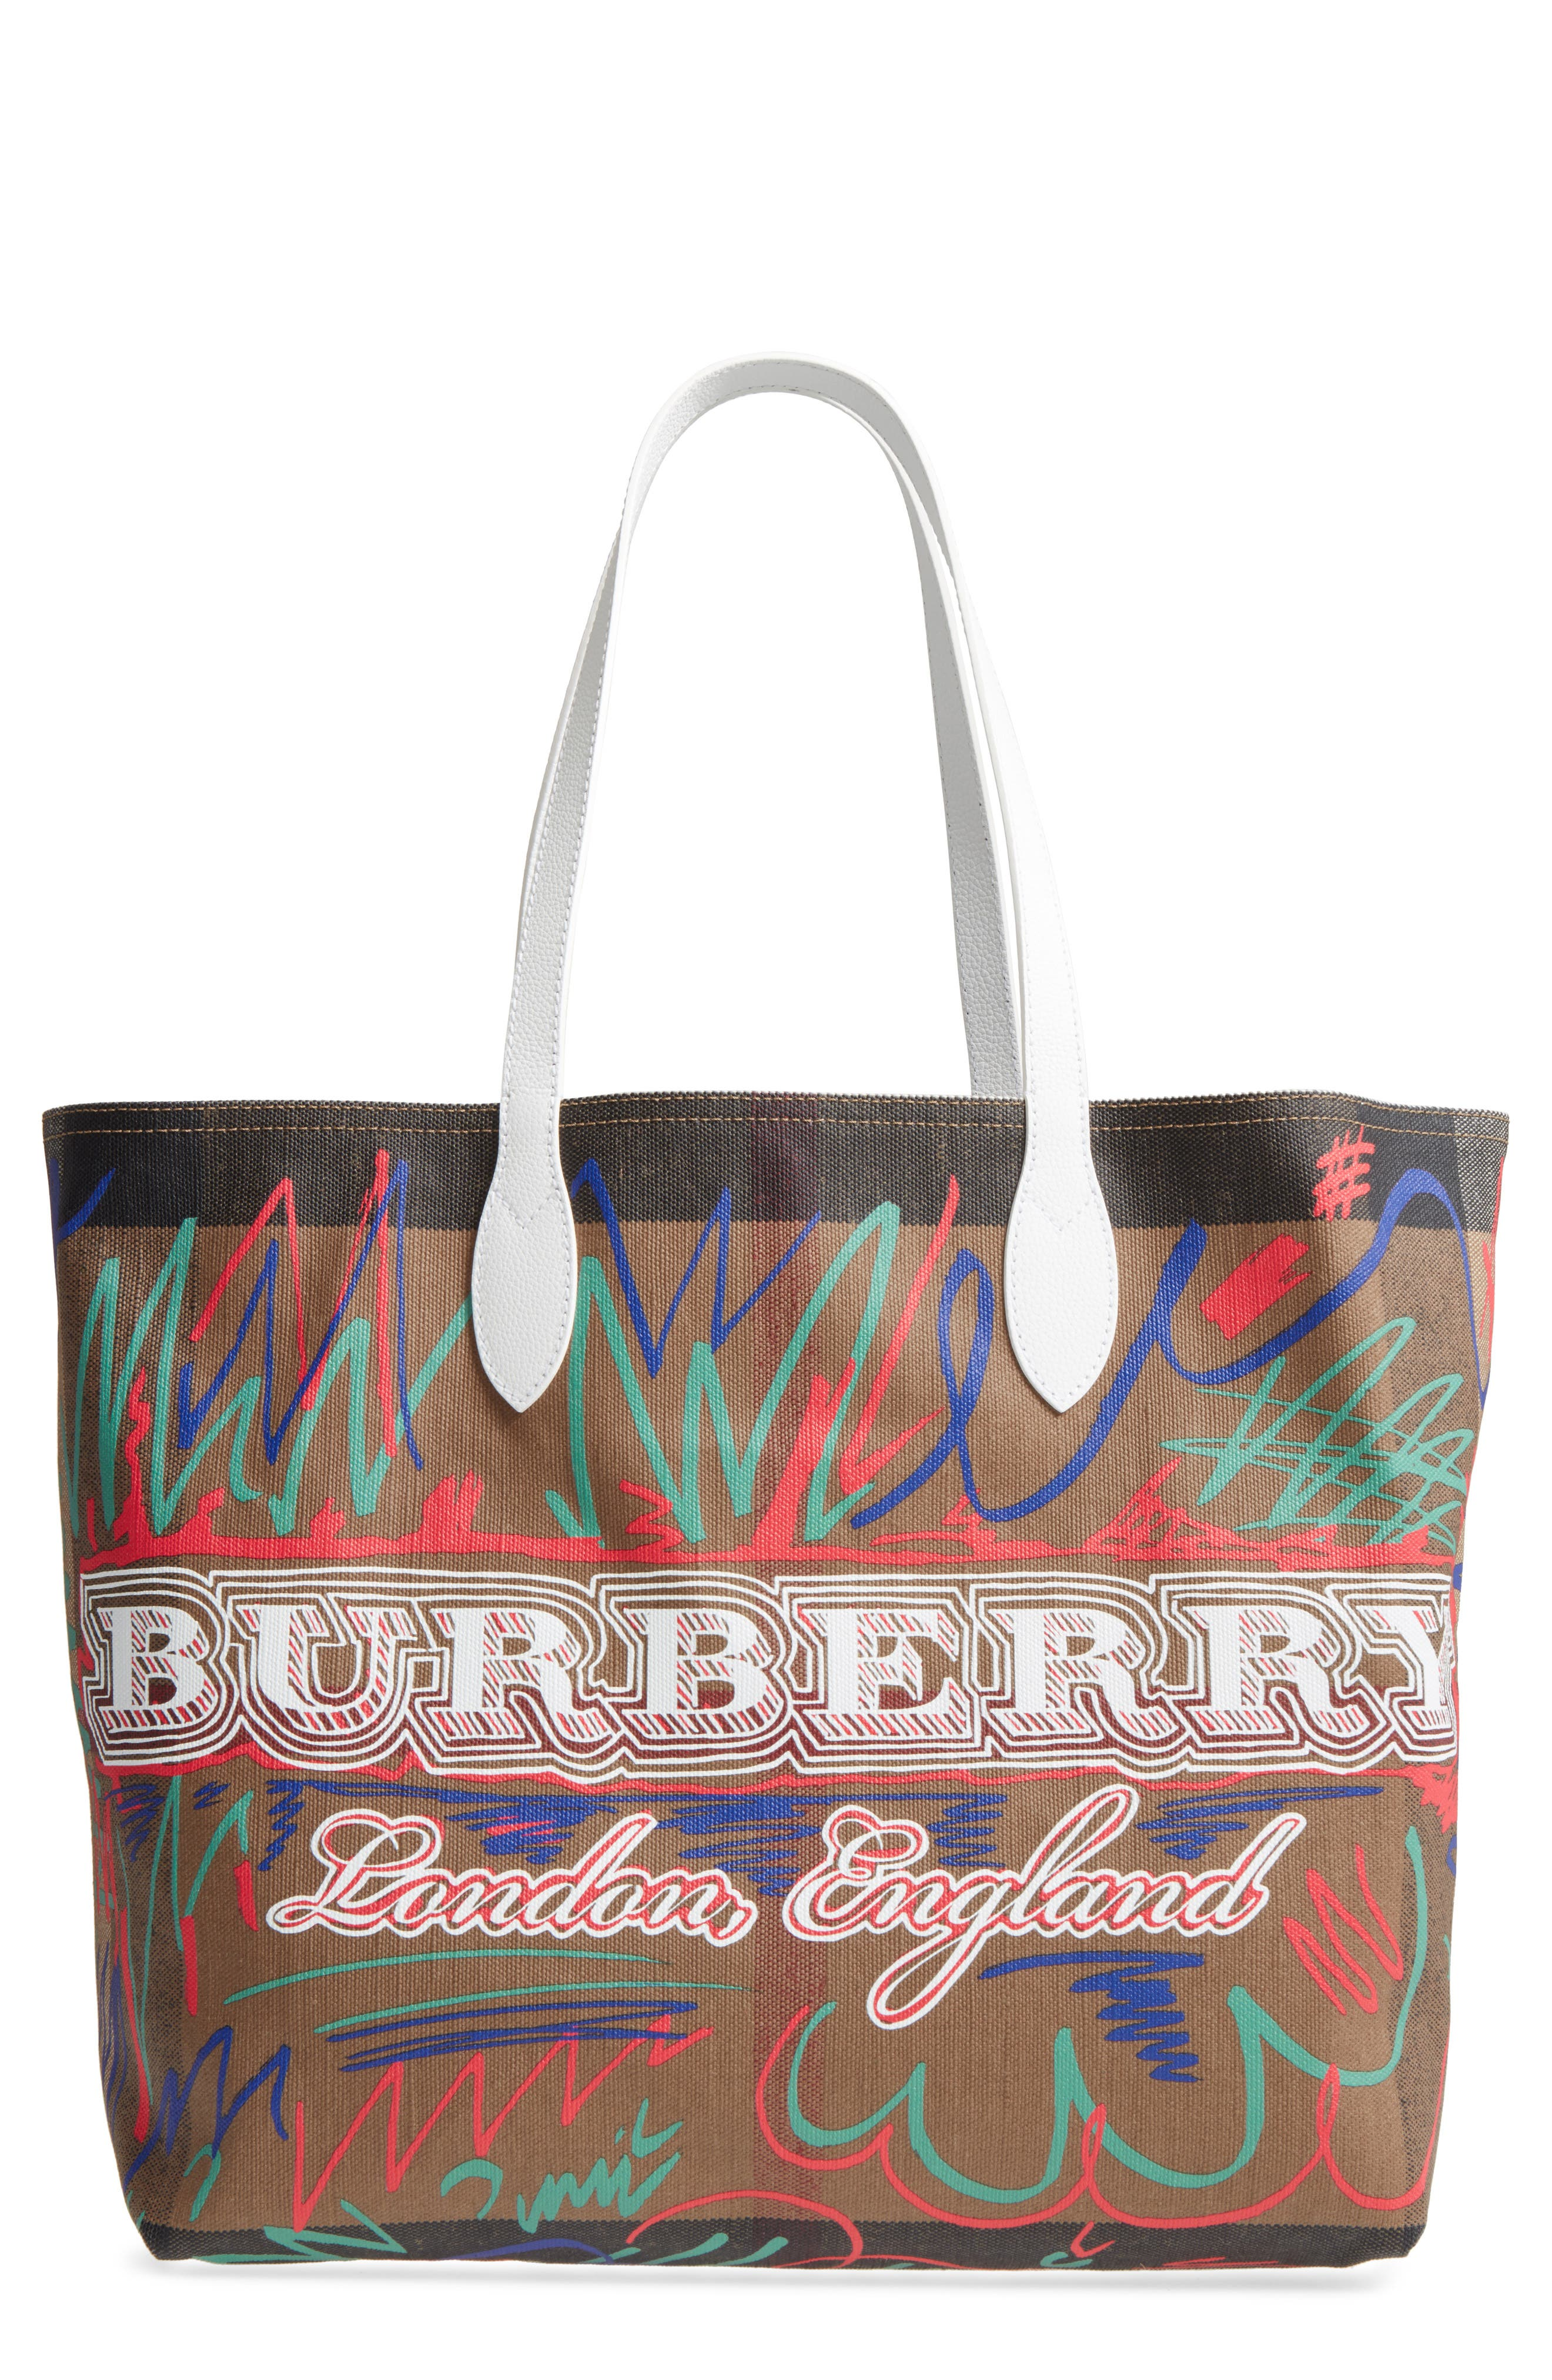 Alternate Image 1 Selected - Burberry Doodletote/Check Reversible Canvas Tote